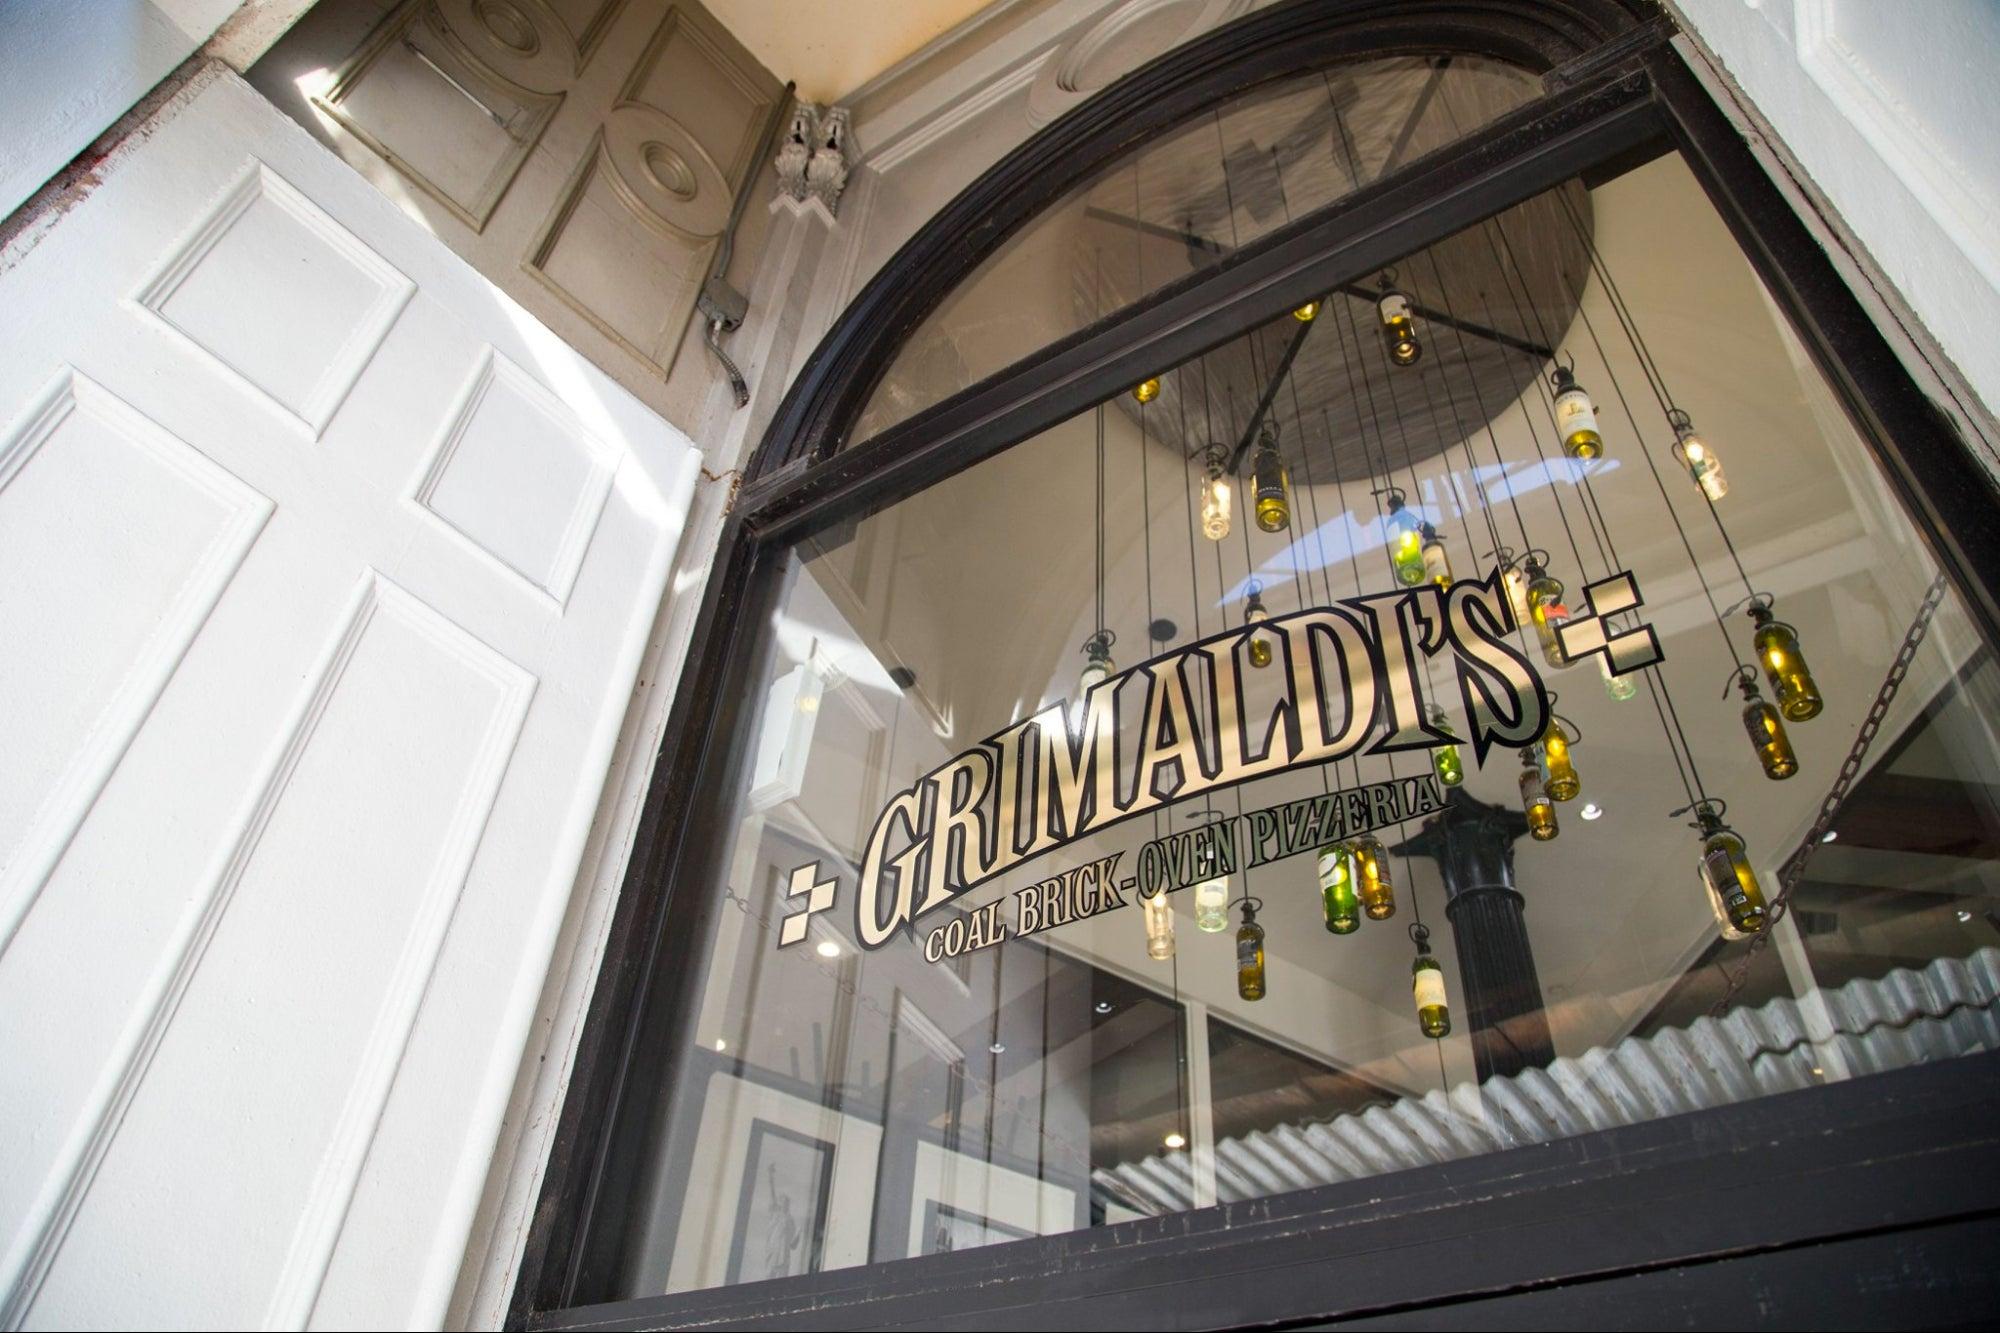 How New York's Legendary Grimaldi's Pizzeria Adapted to the Crisis